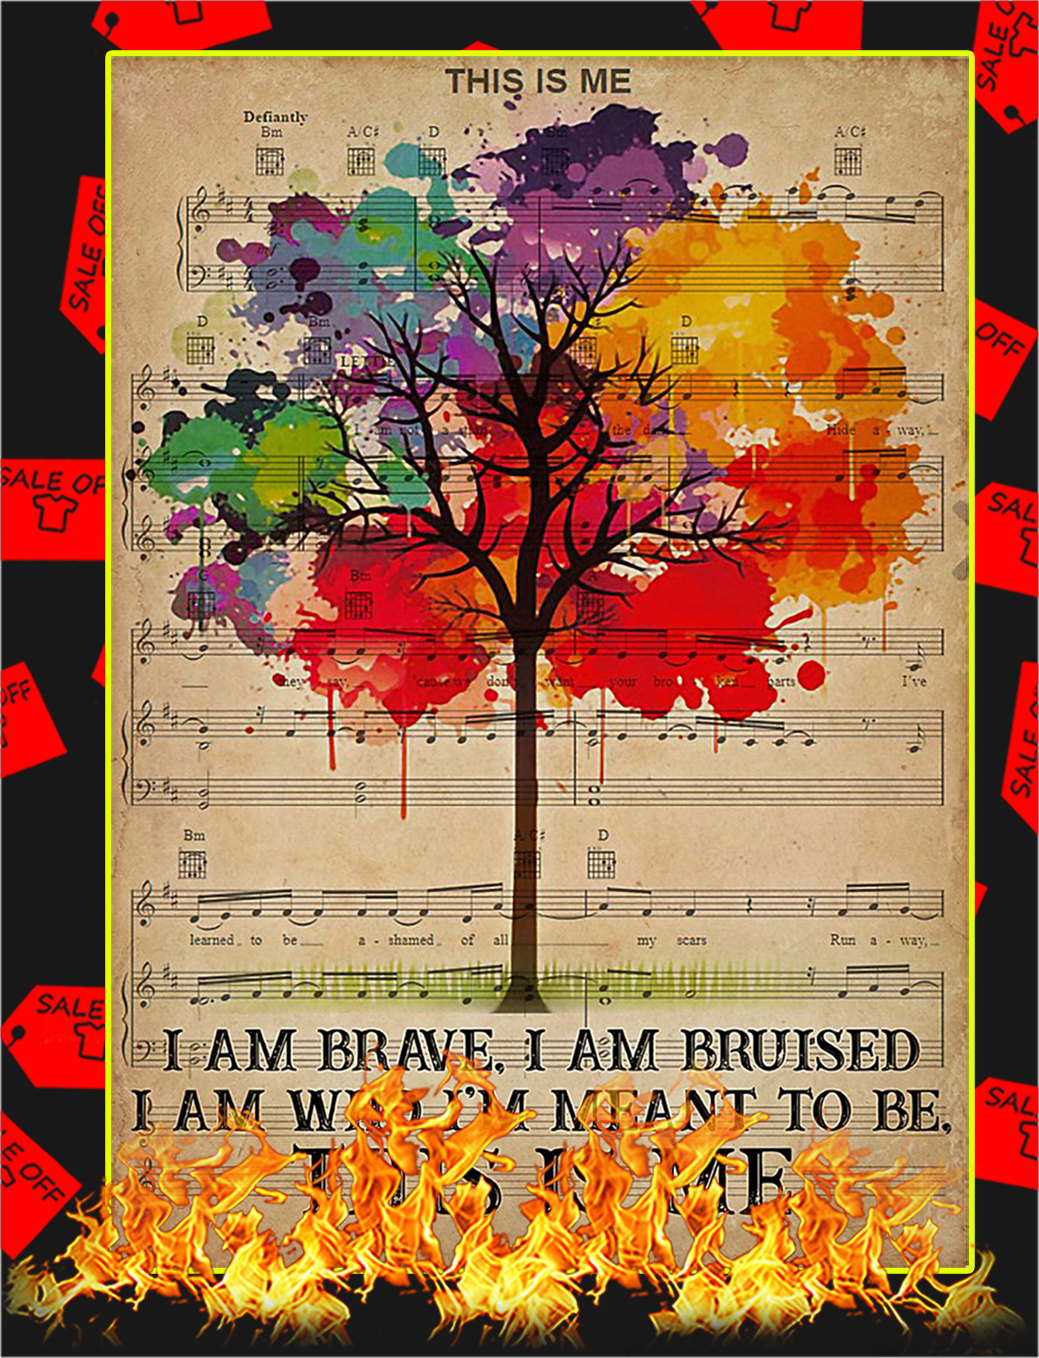 LGBT I am brave I am bruised poster - A1